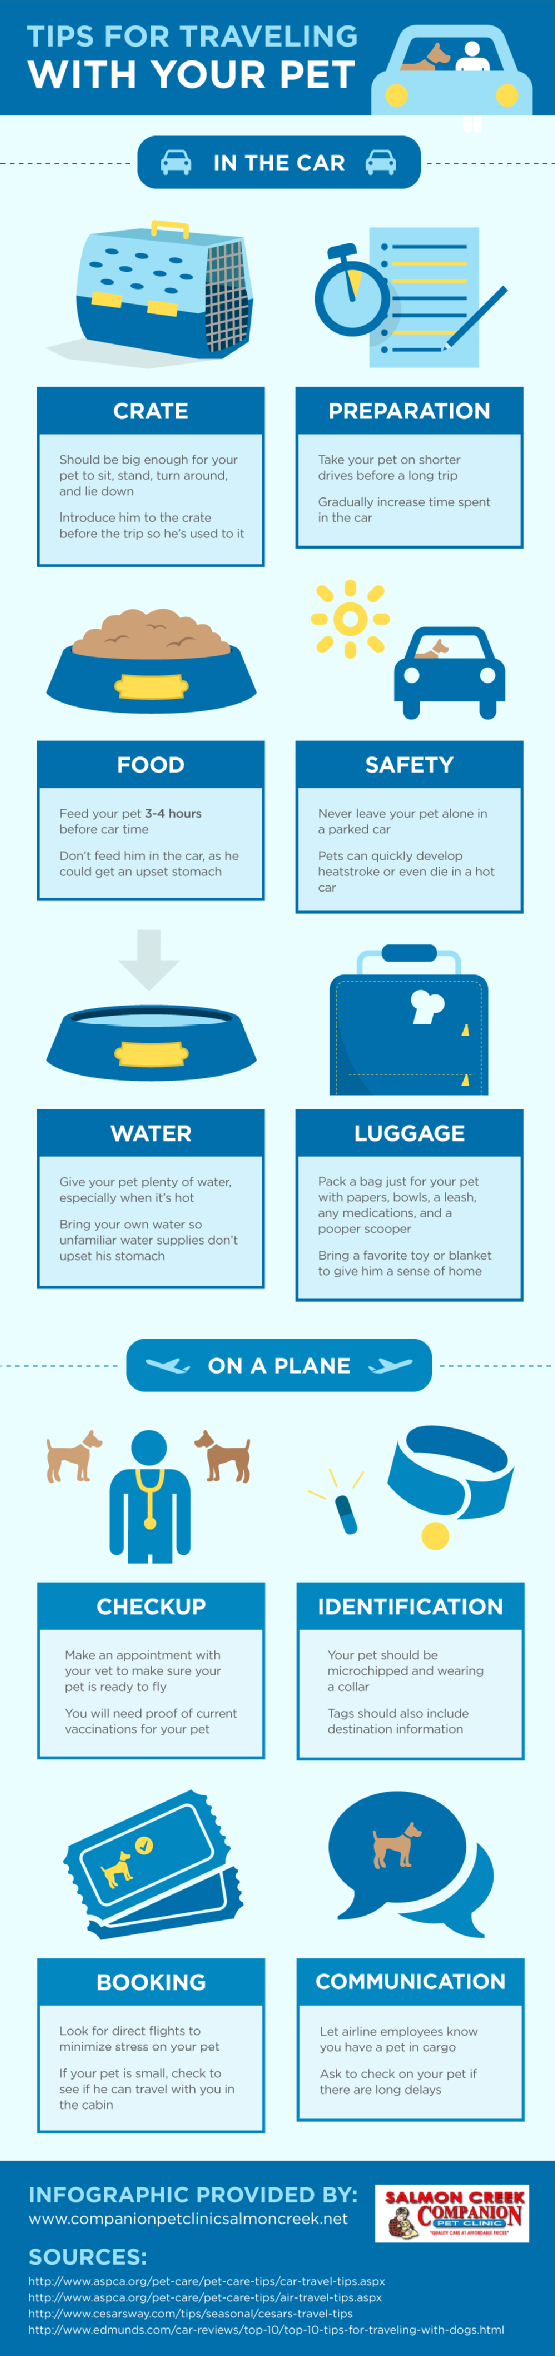 tips-for-traveling-with-your-pet_primal canine dog tranining